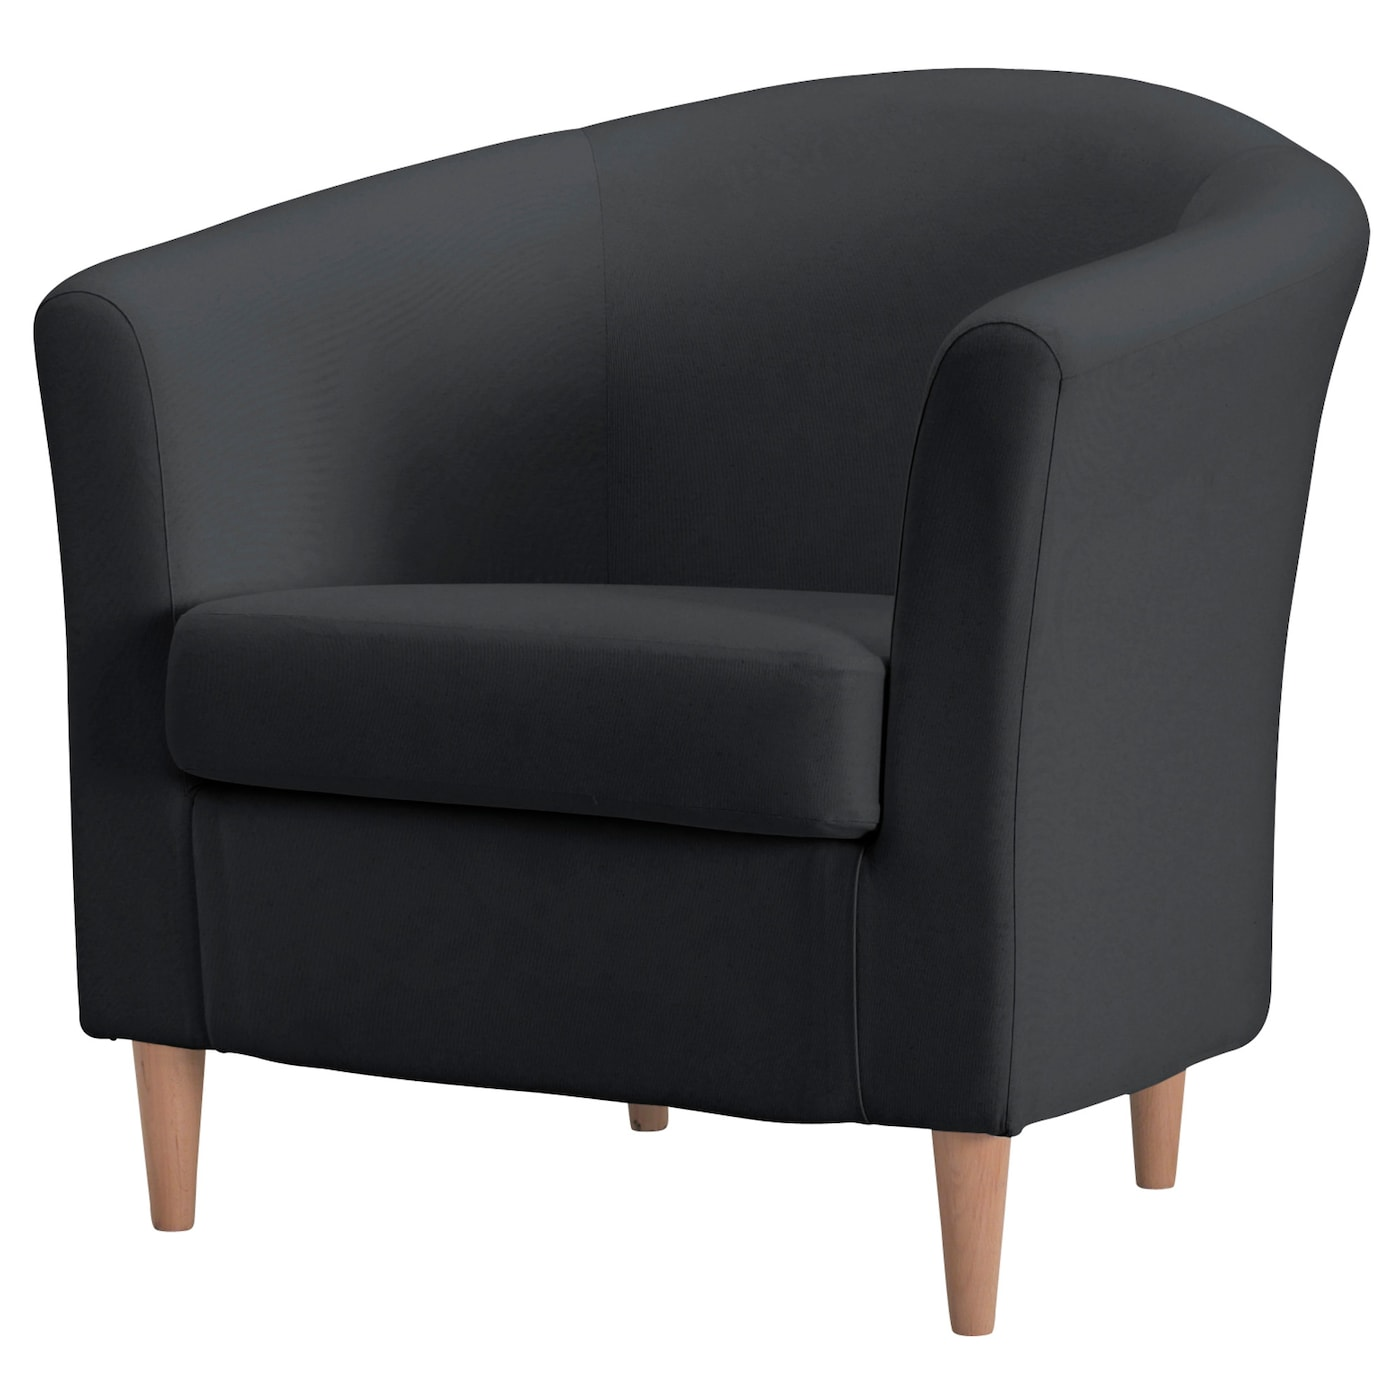 IKEA TULLSTA armchair Slim lines, easy to place.